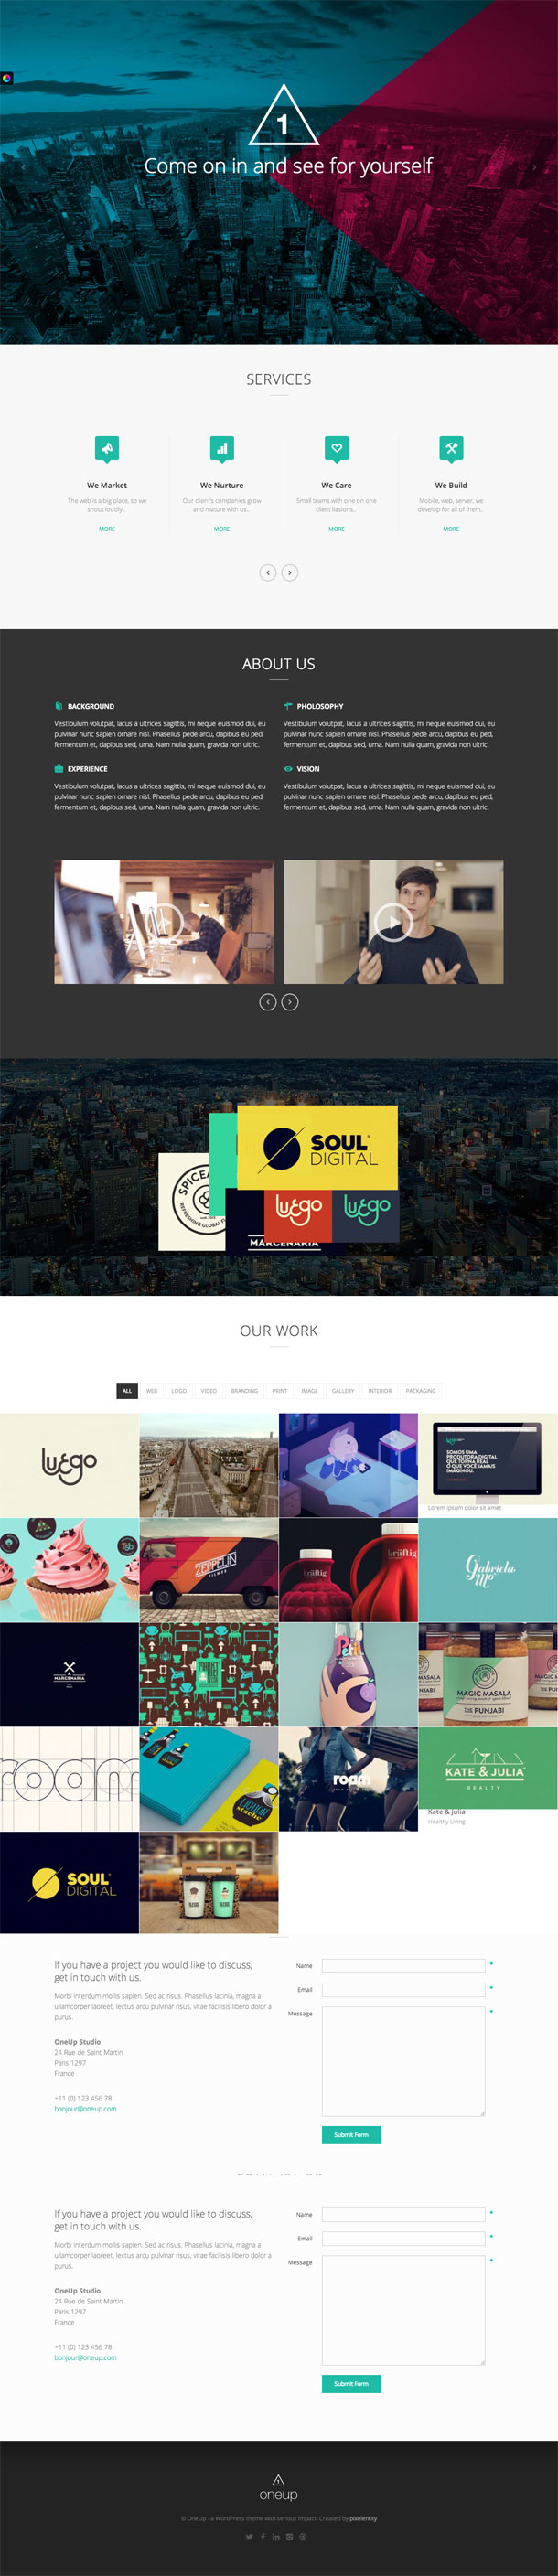 OneUp Grid Theme Image